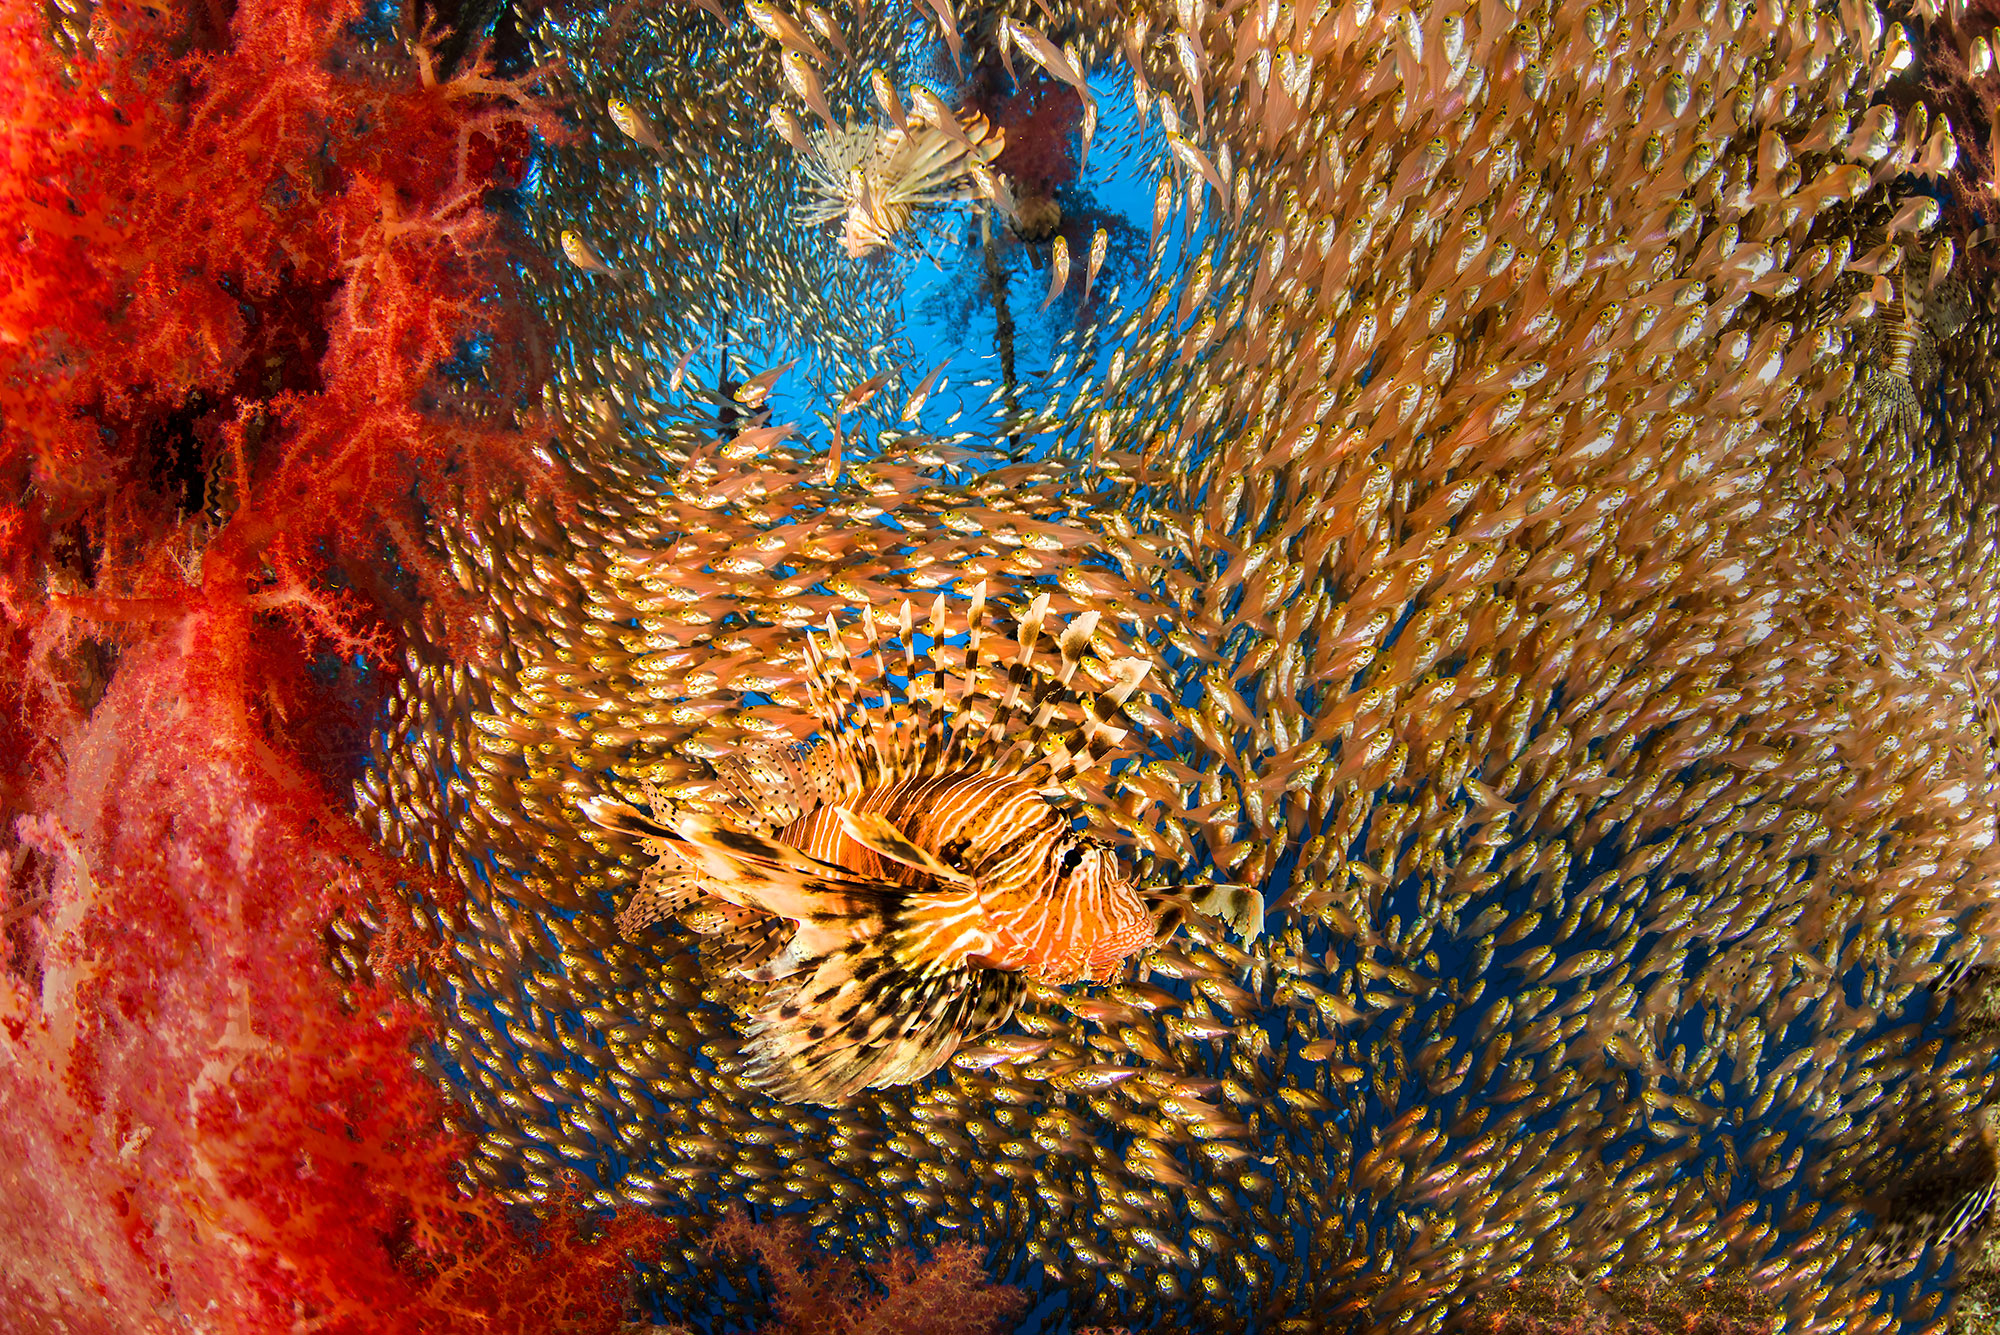 Lion Fish in school of Glass Fish at the Satil Wreck